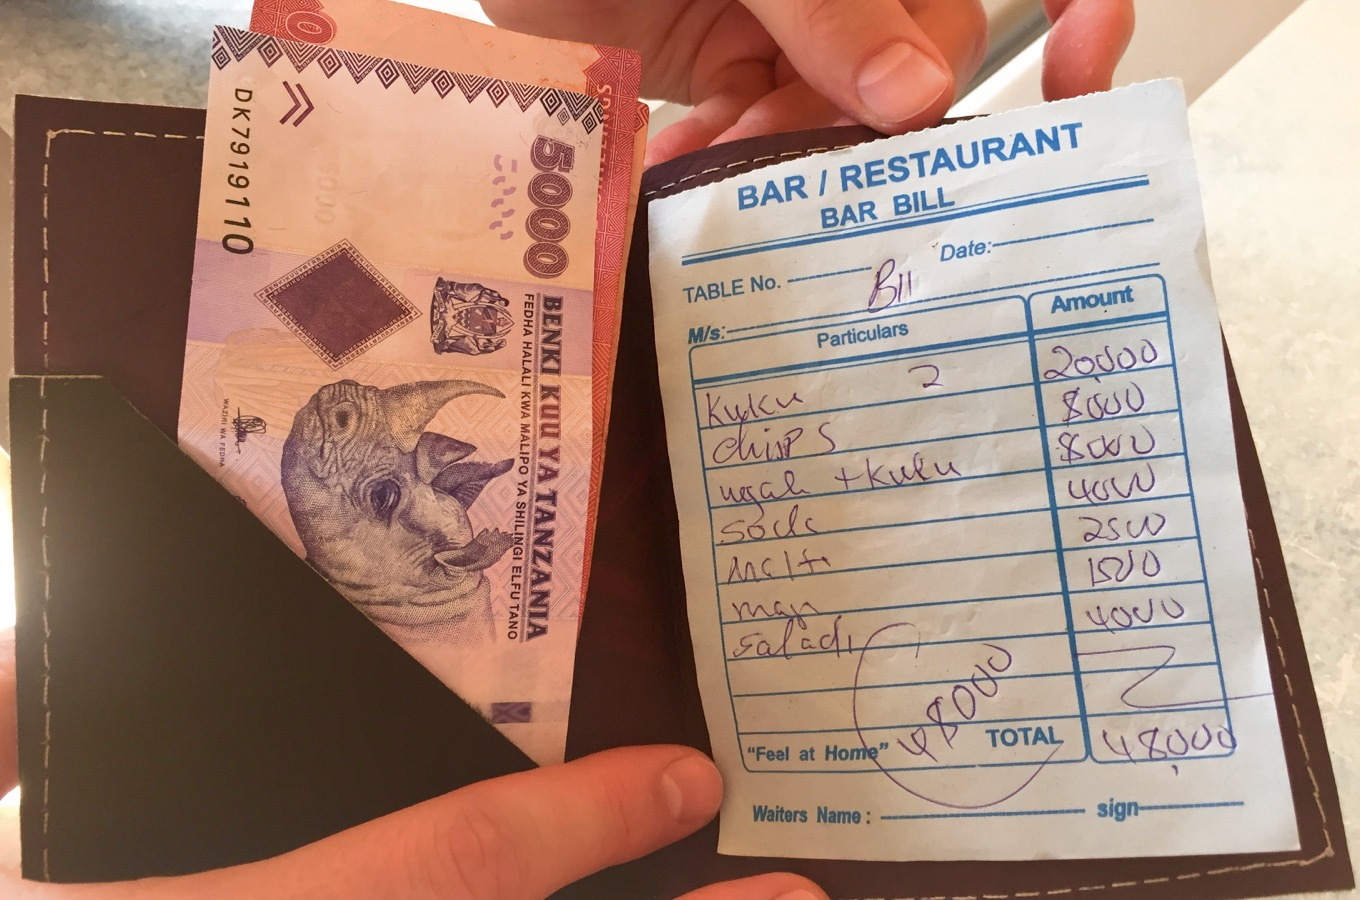 Check restaurant shilling bill